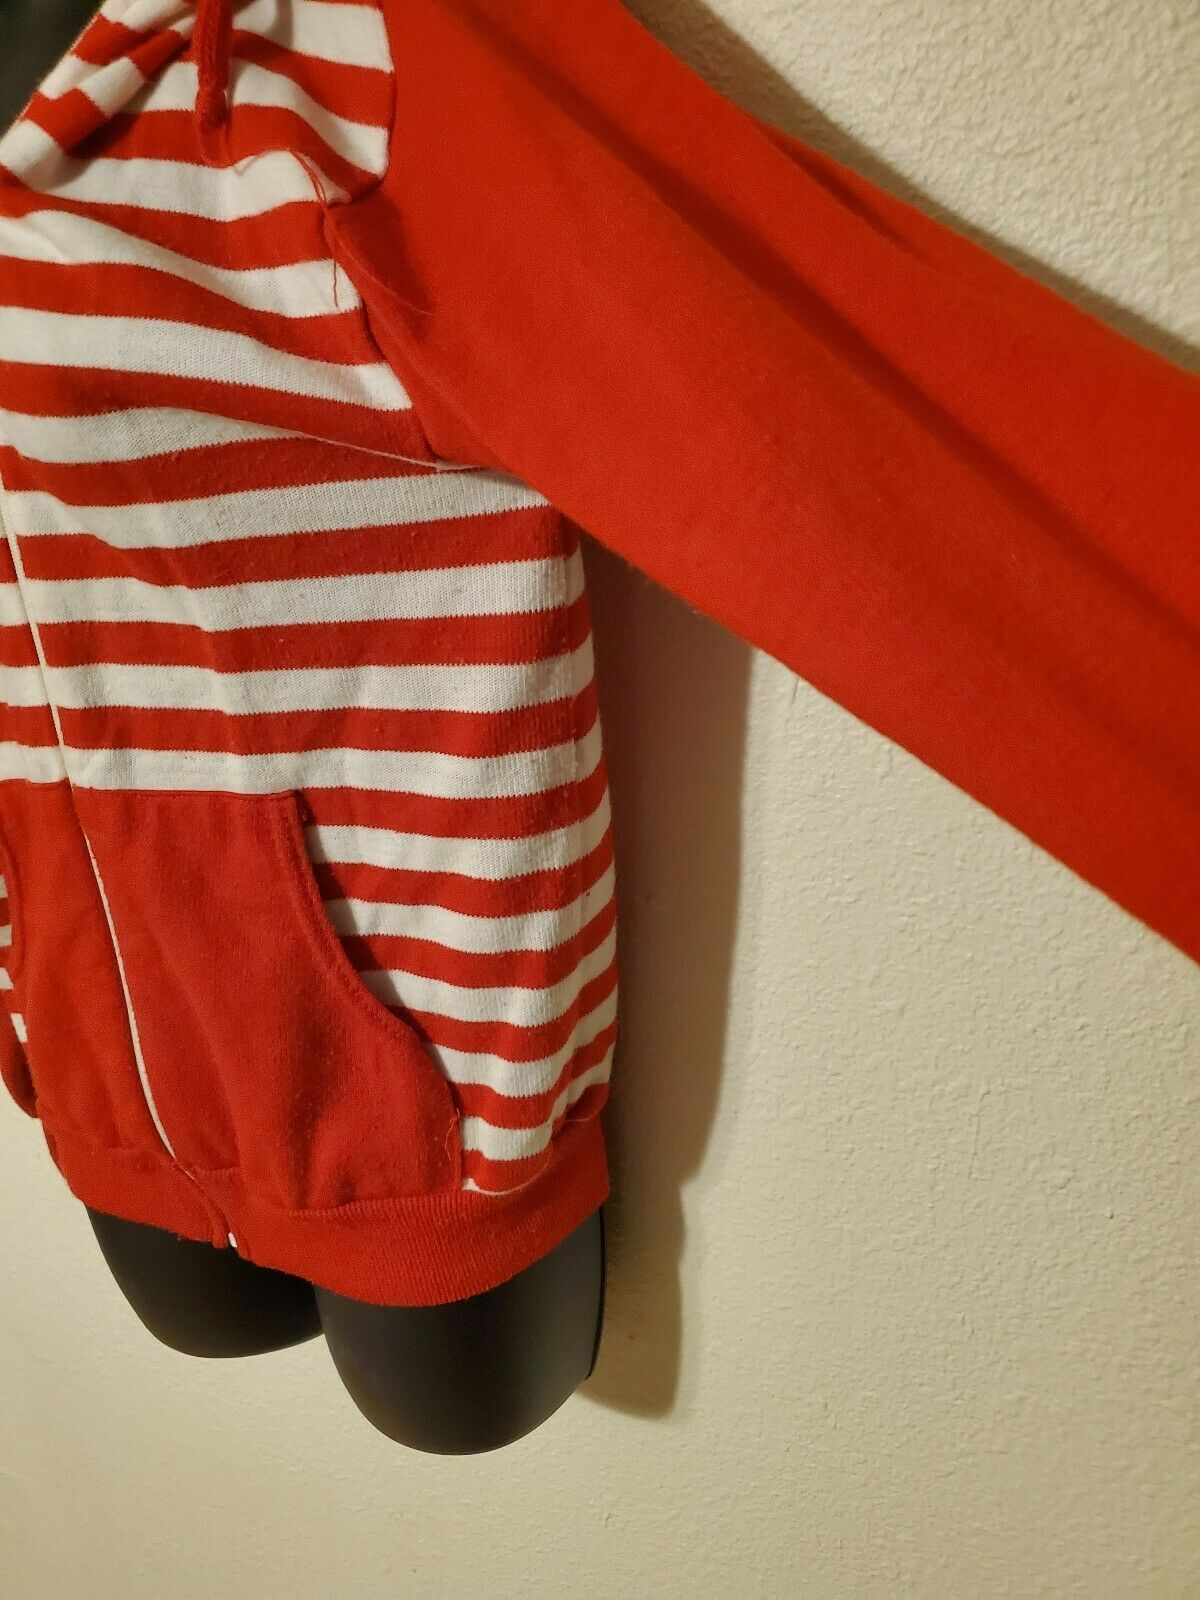 Vintage 70s 80s JCPenney Striped Red Zip Up Hoodi… - image 2